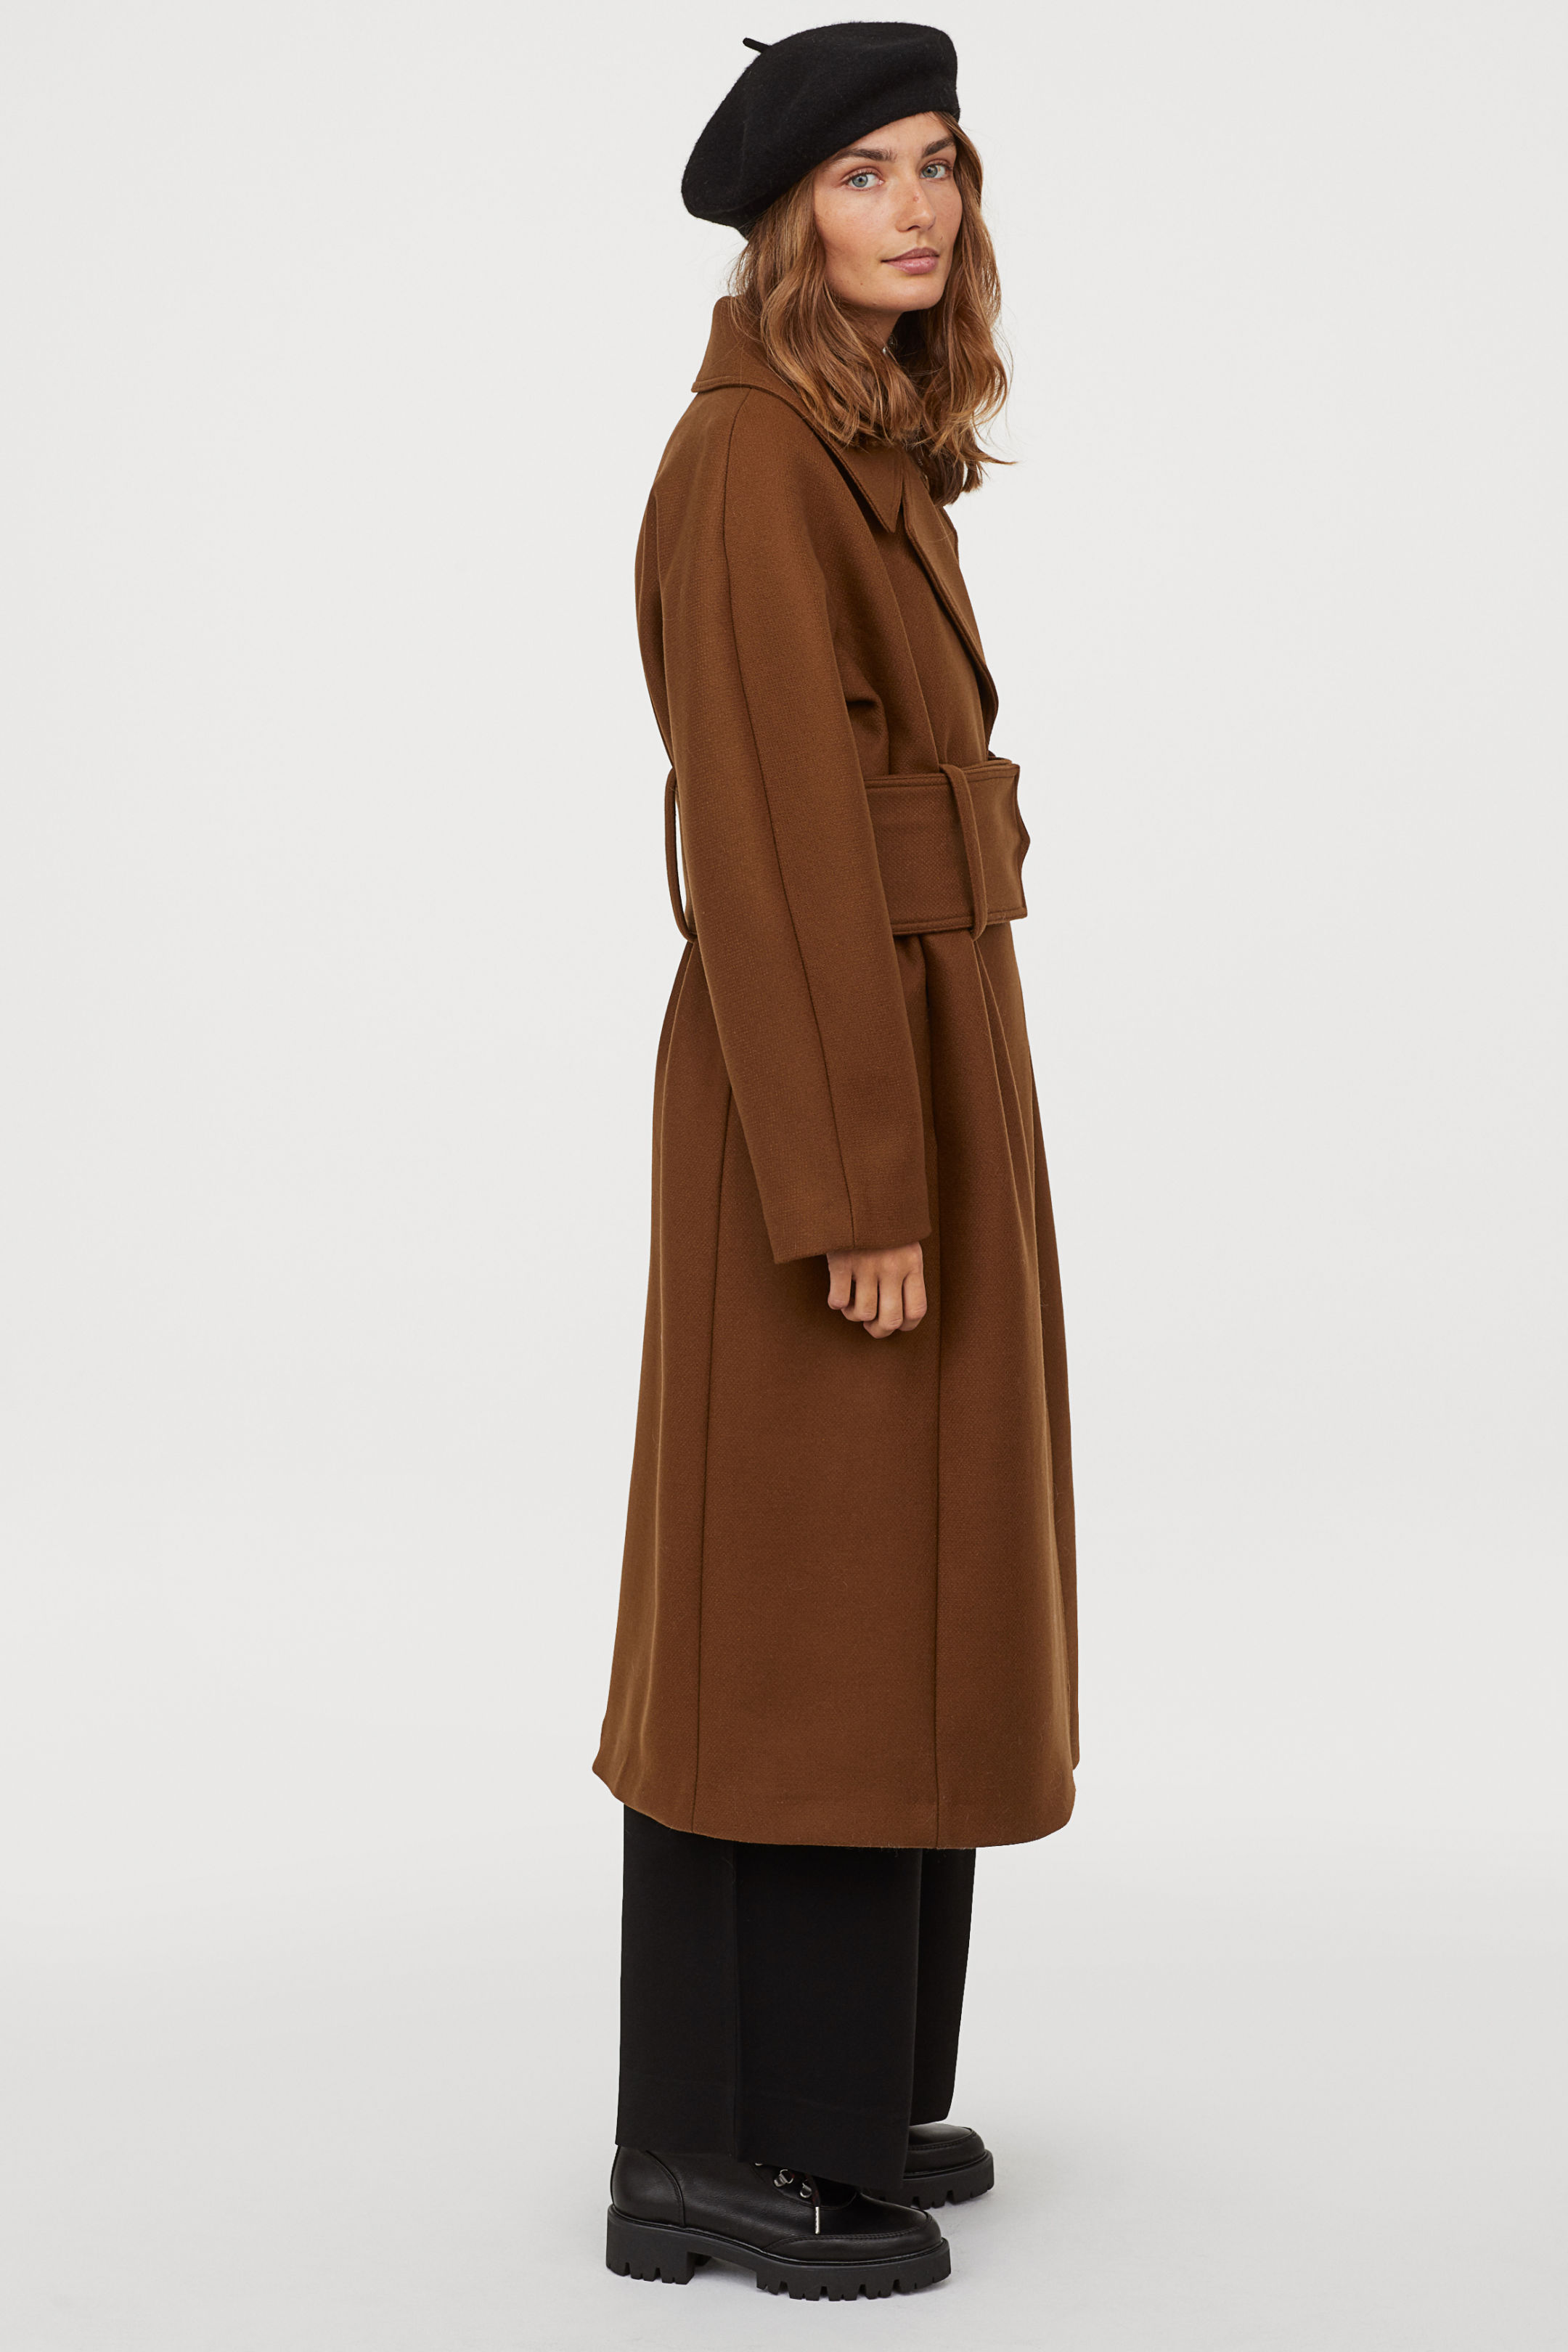 My favorite weekly finds, including this HM Long Wool-blend Coat | Click through for the details. | glitterinc.com | @glitterinc